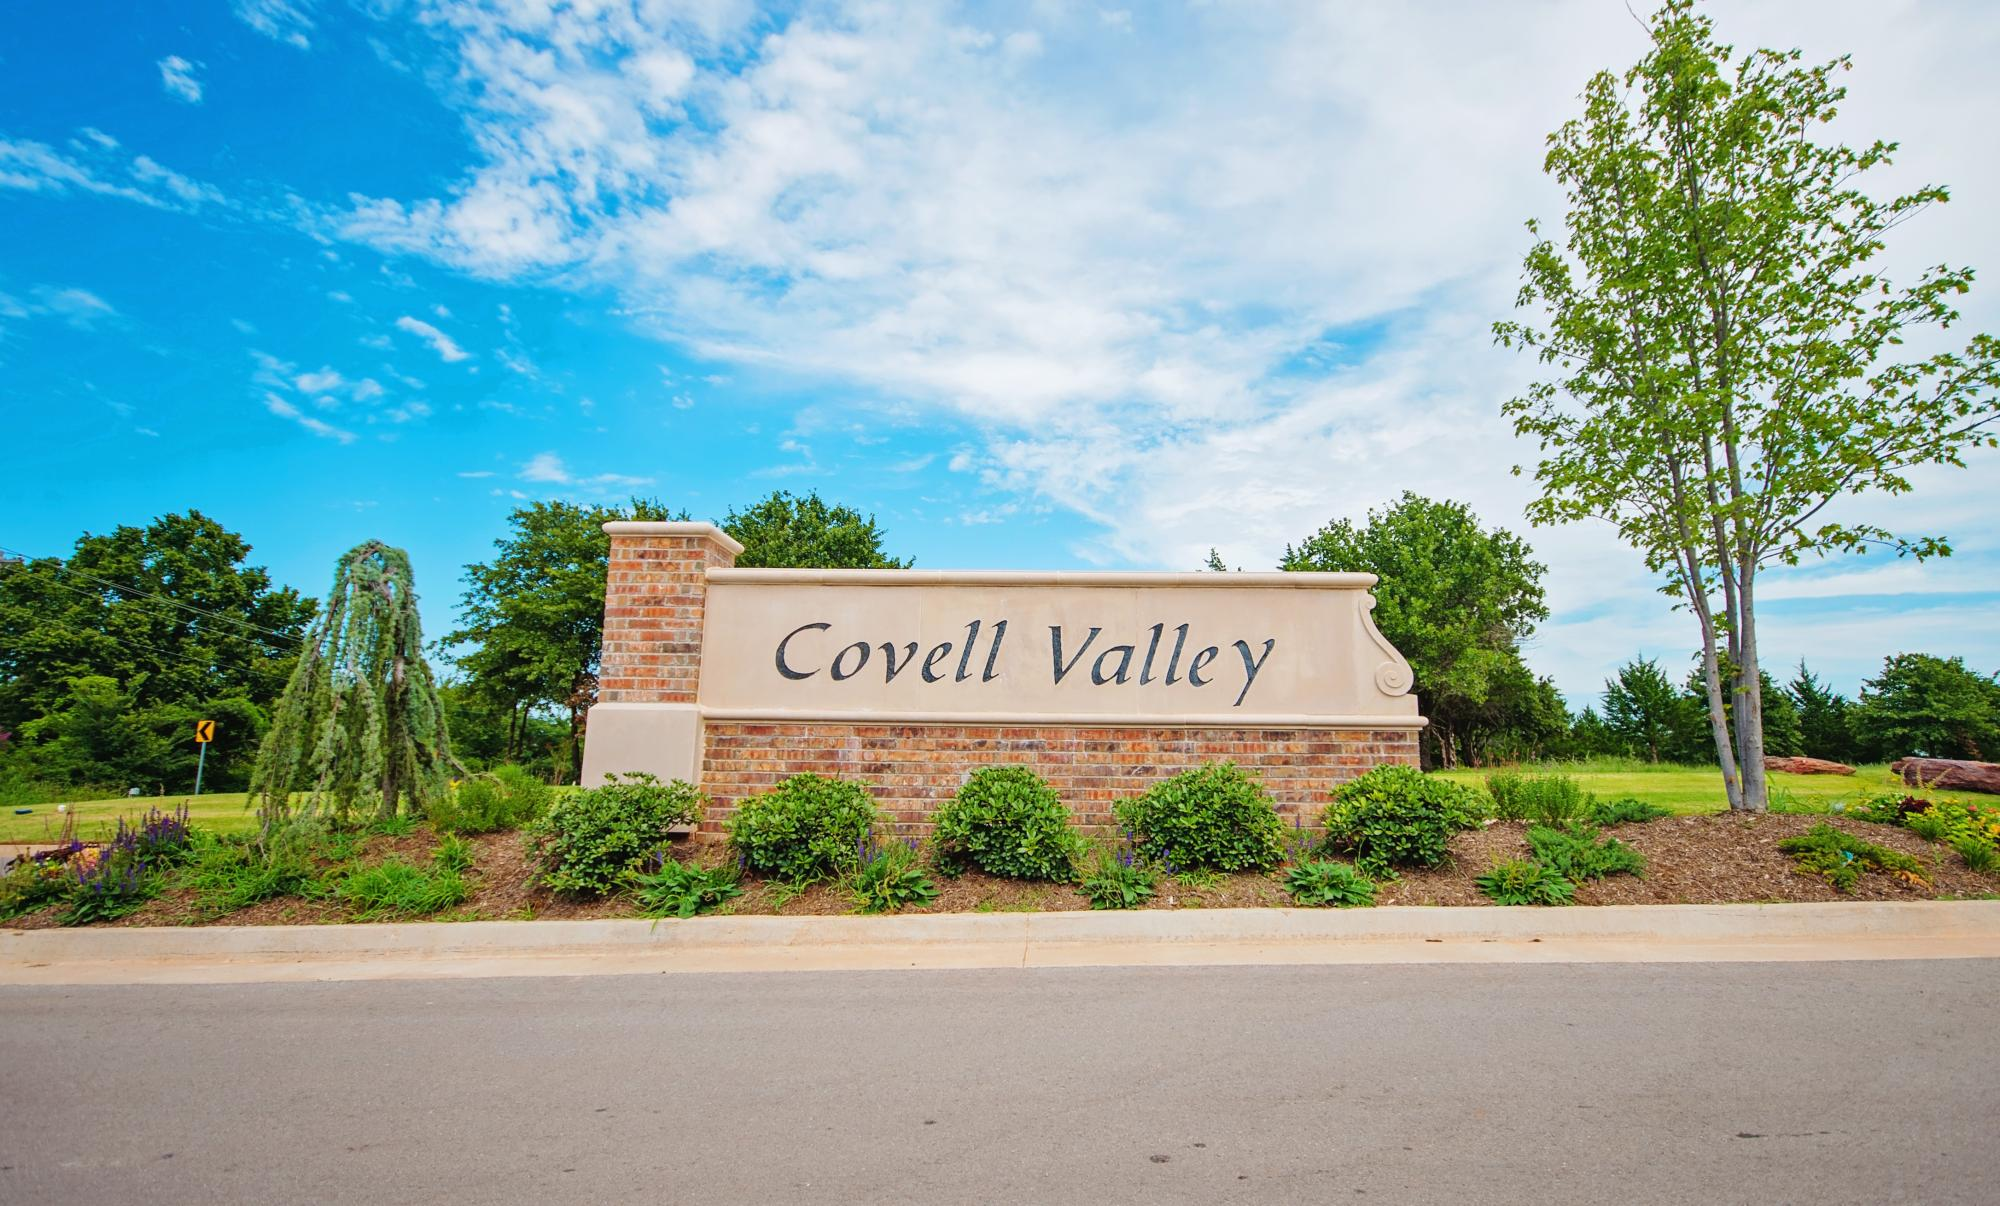 Covell valley new homes in edmond ok covell valley edmond ok sciox Gallery